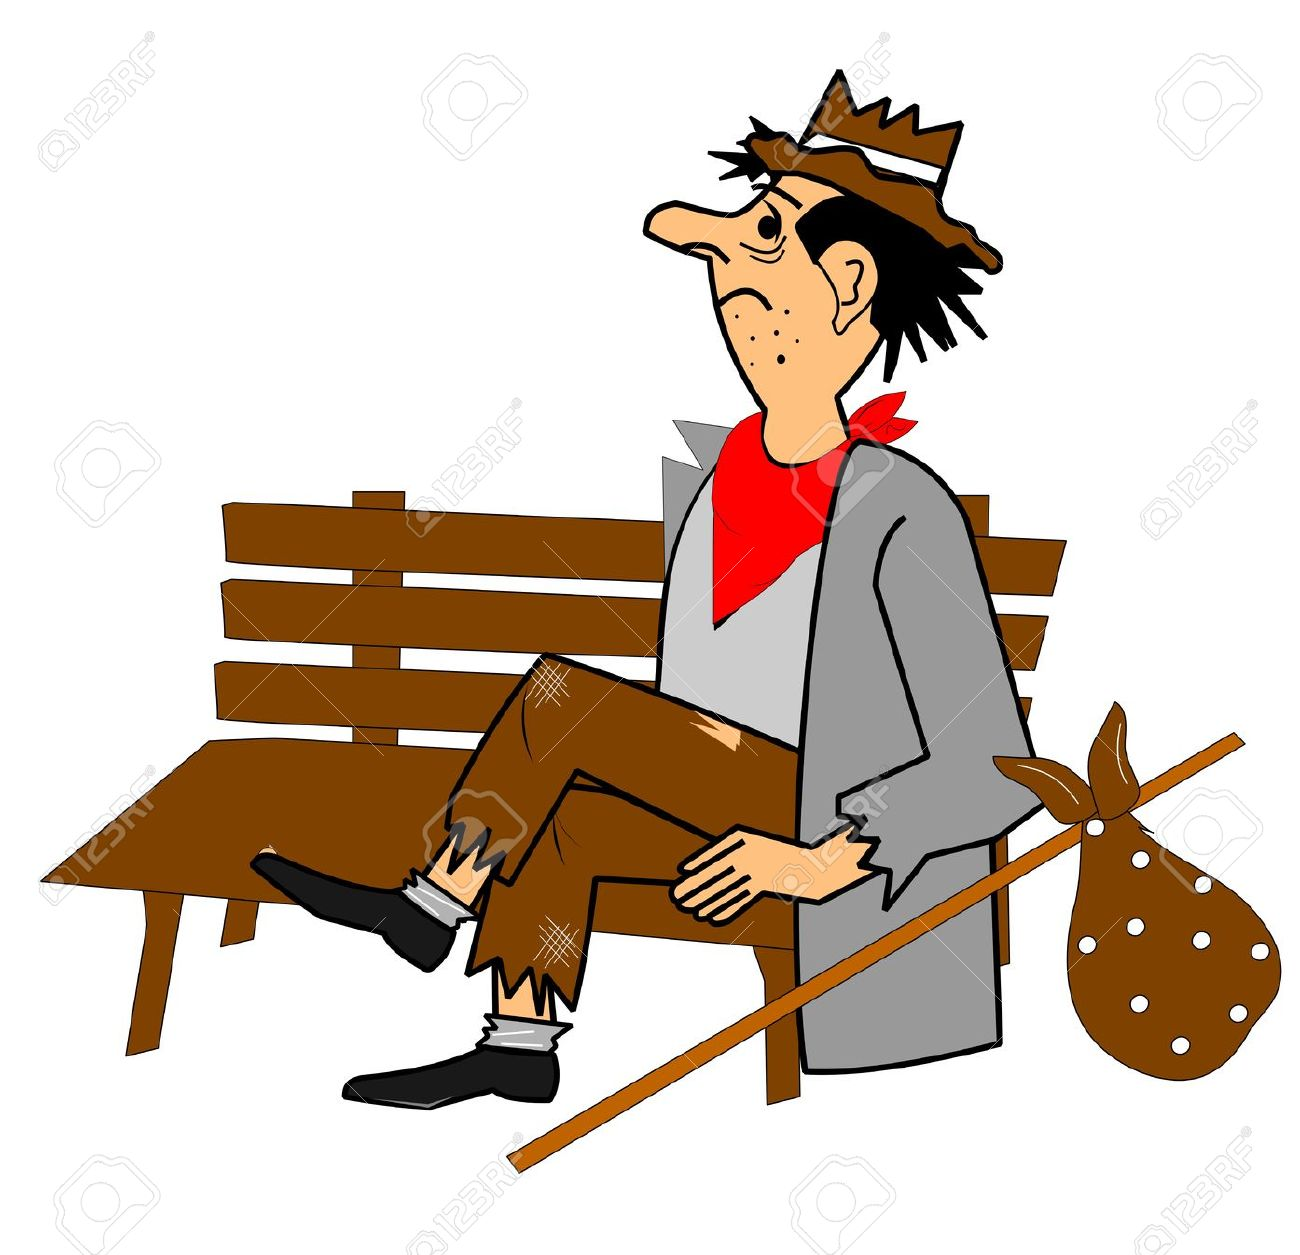 Homeless Man On Park Bench Royalty Free Cliparts, Vectors, And.